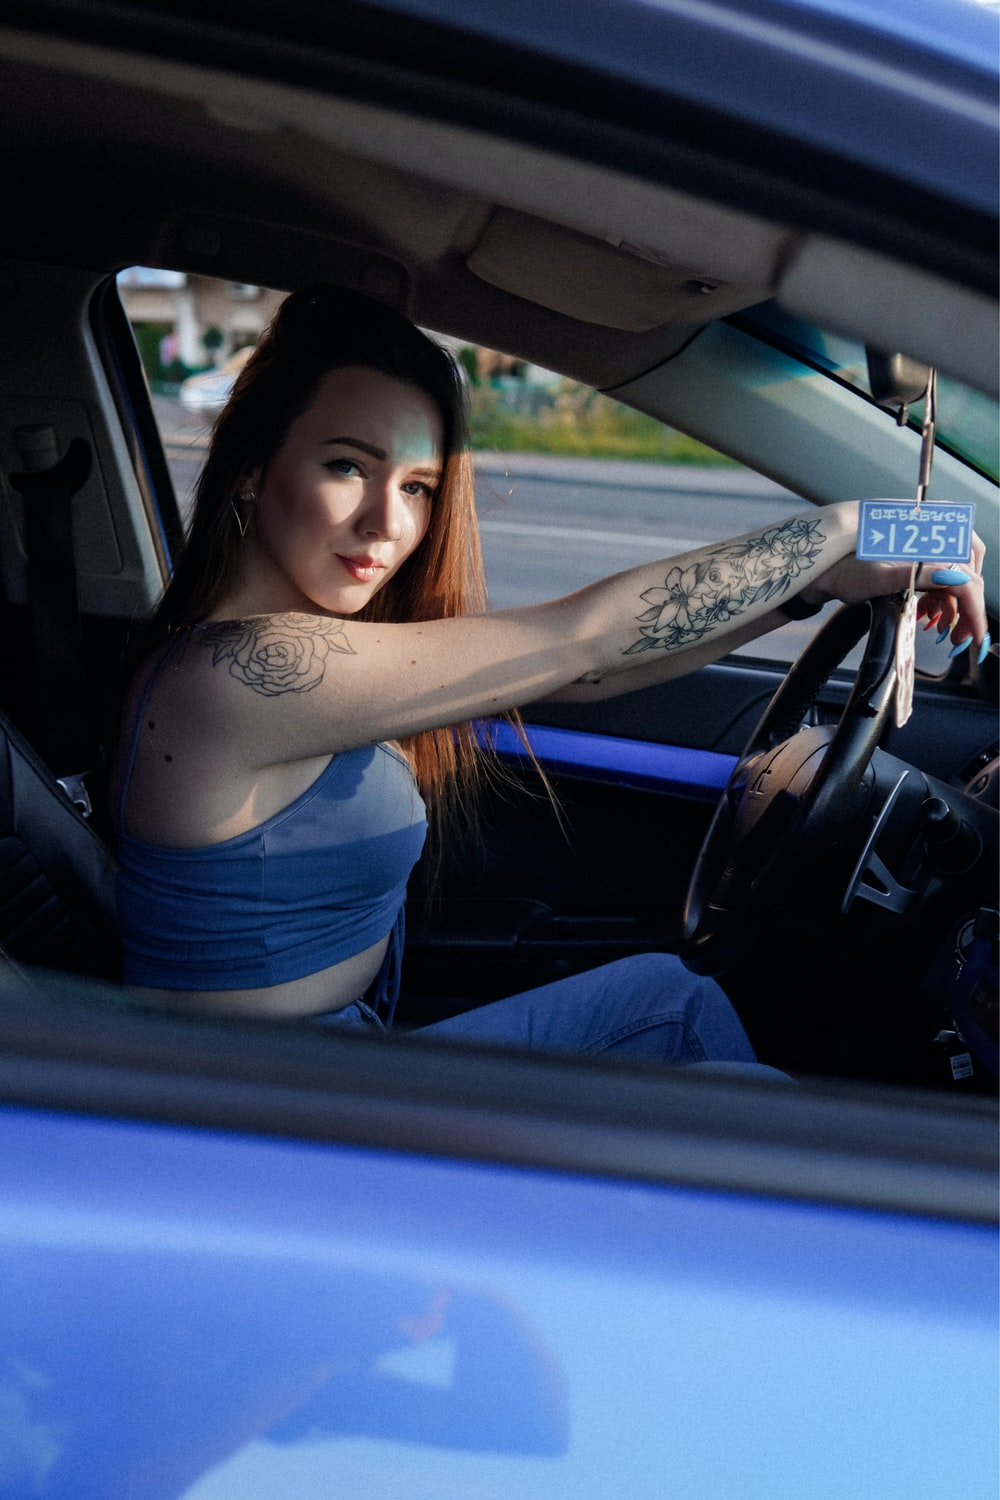 woman in blue tank top and blue denim jeans sitting on car seat